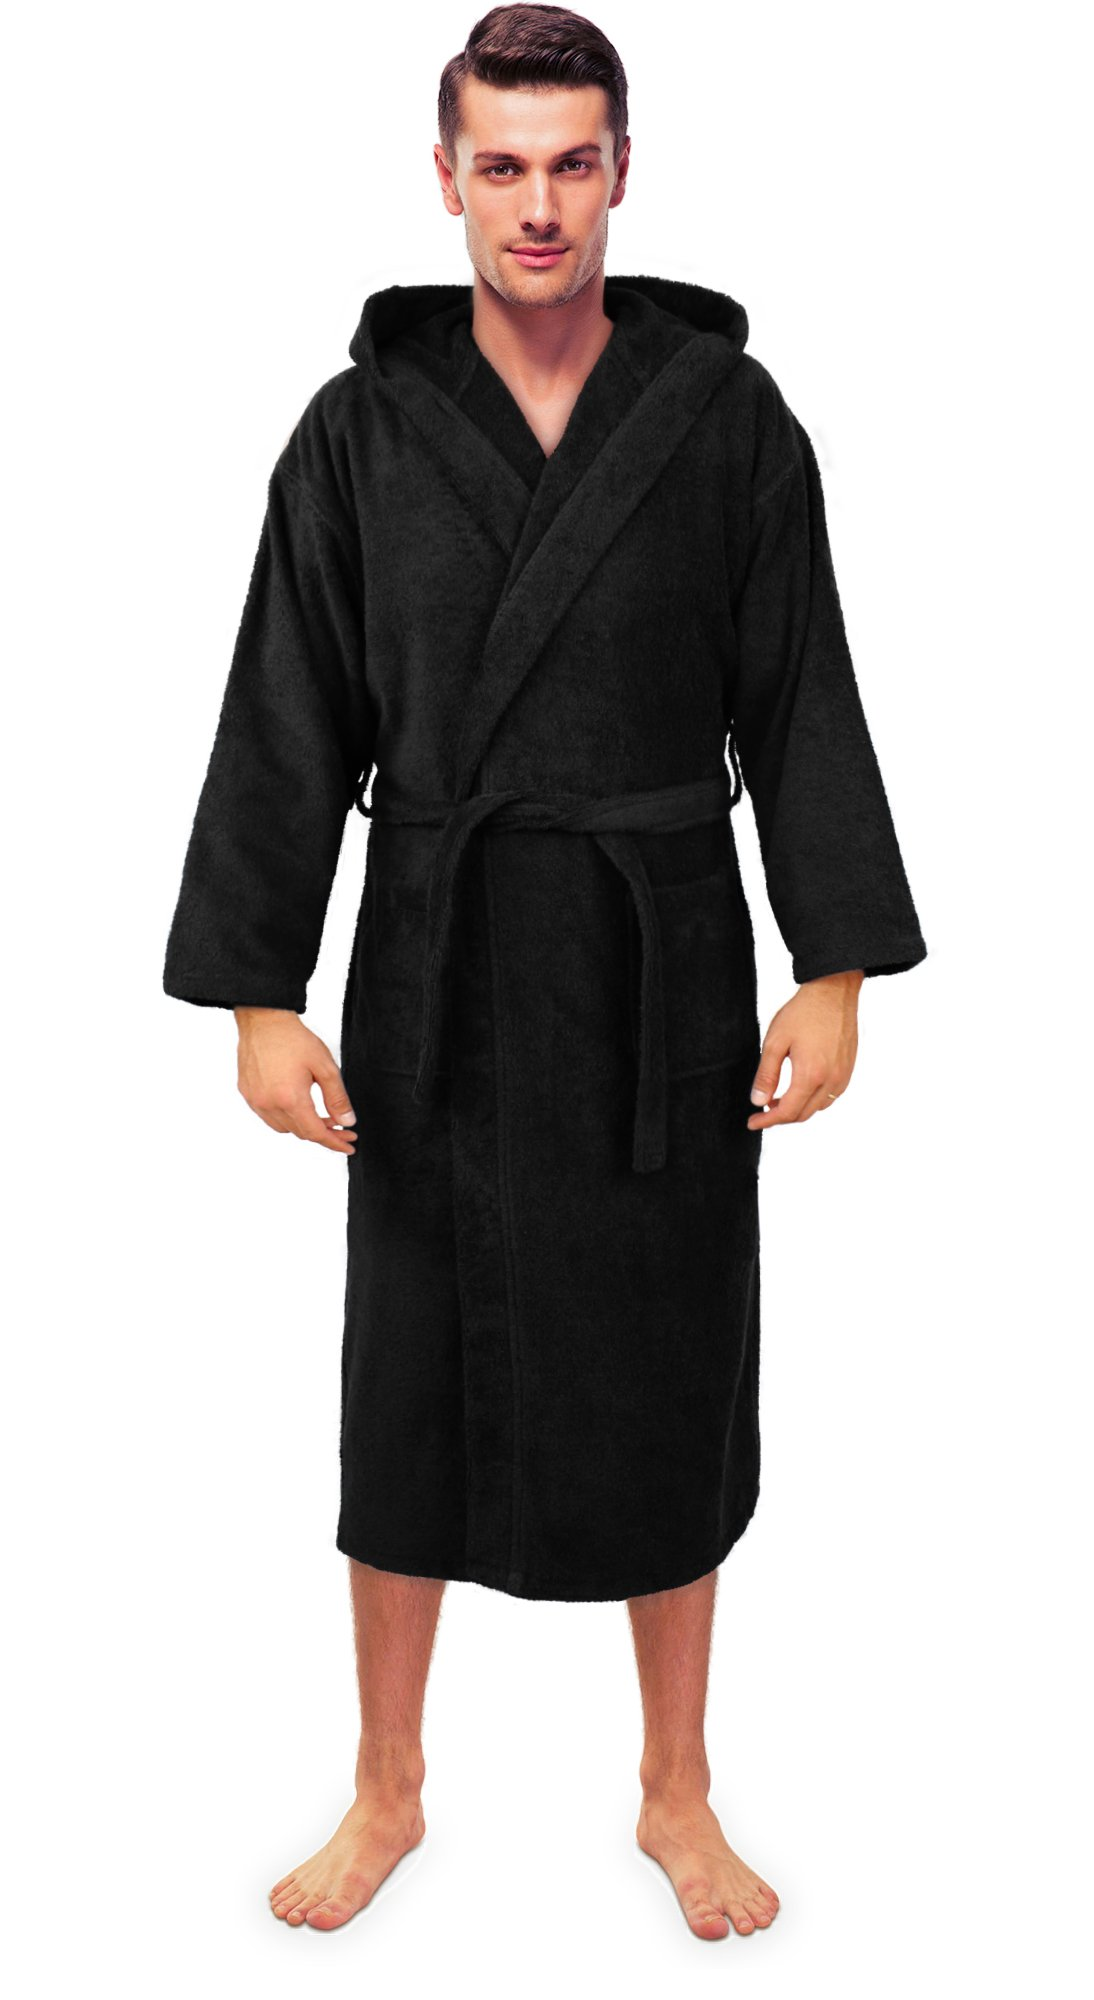 Turkuoise Men's Turkish Terry Cloth Robe, Thick Hooded Bathrobe